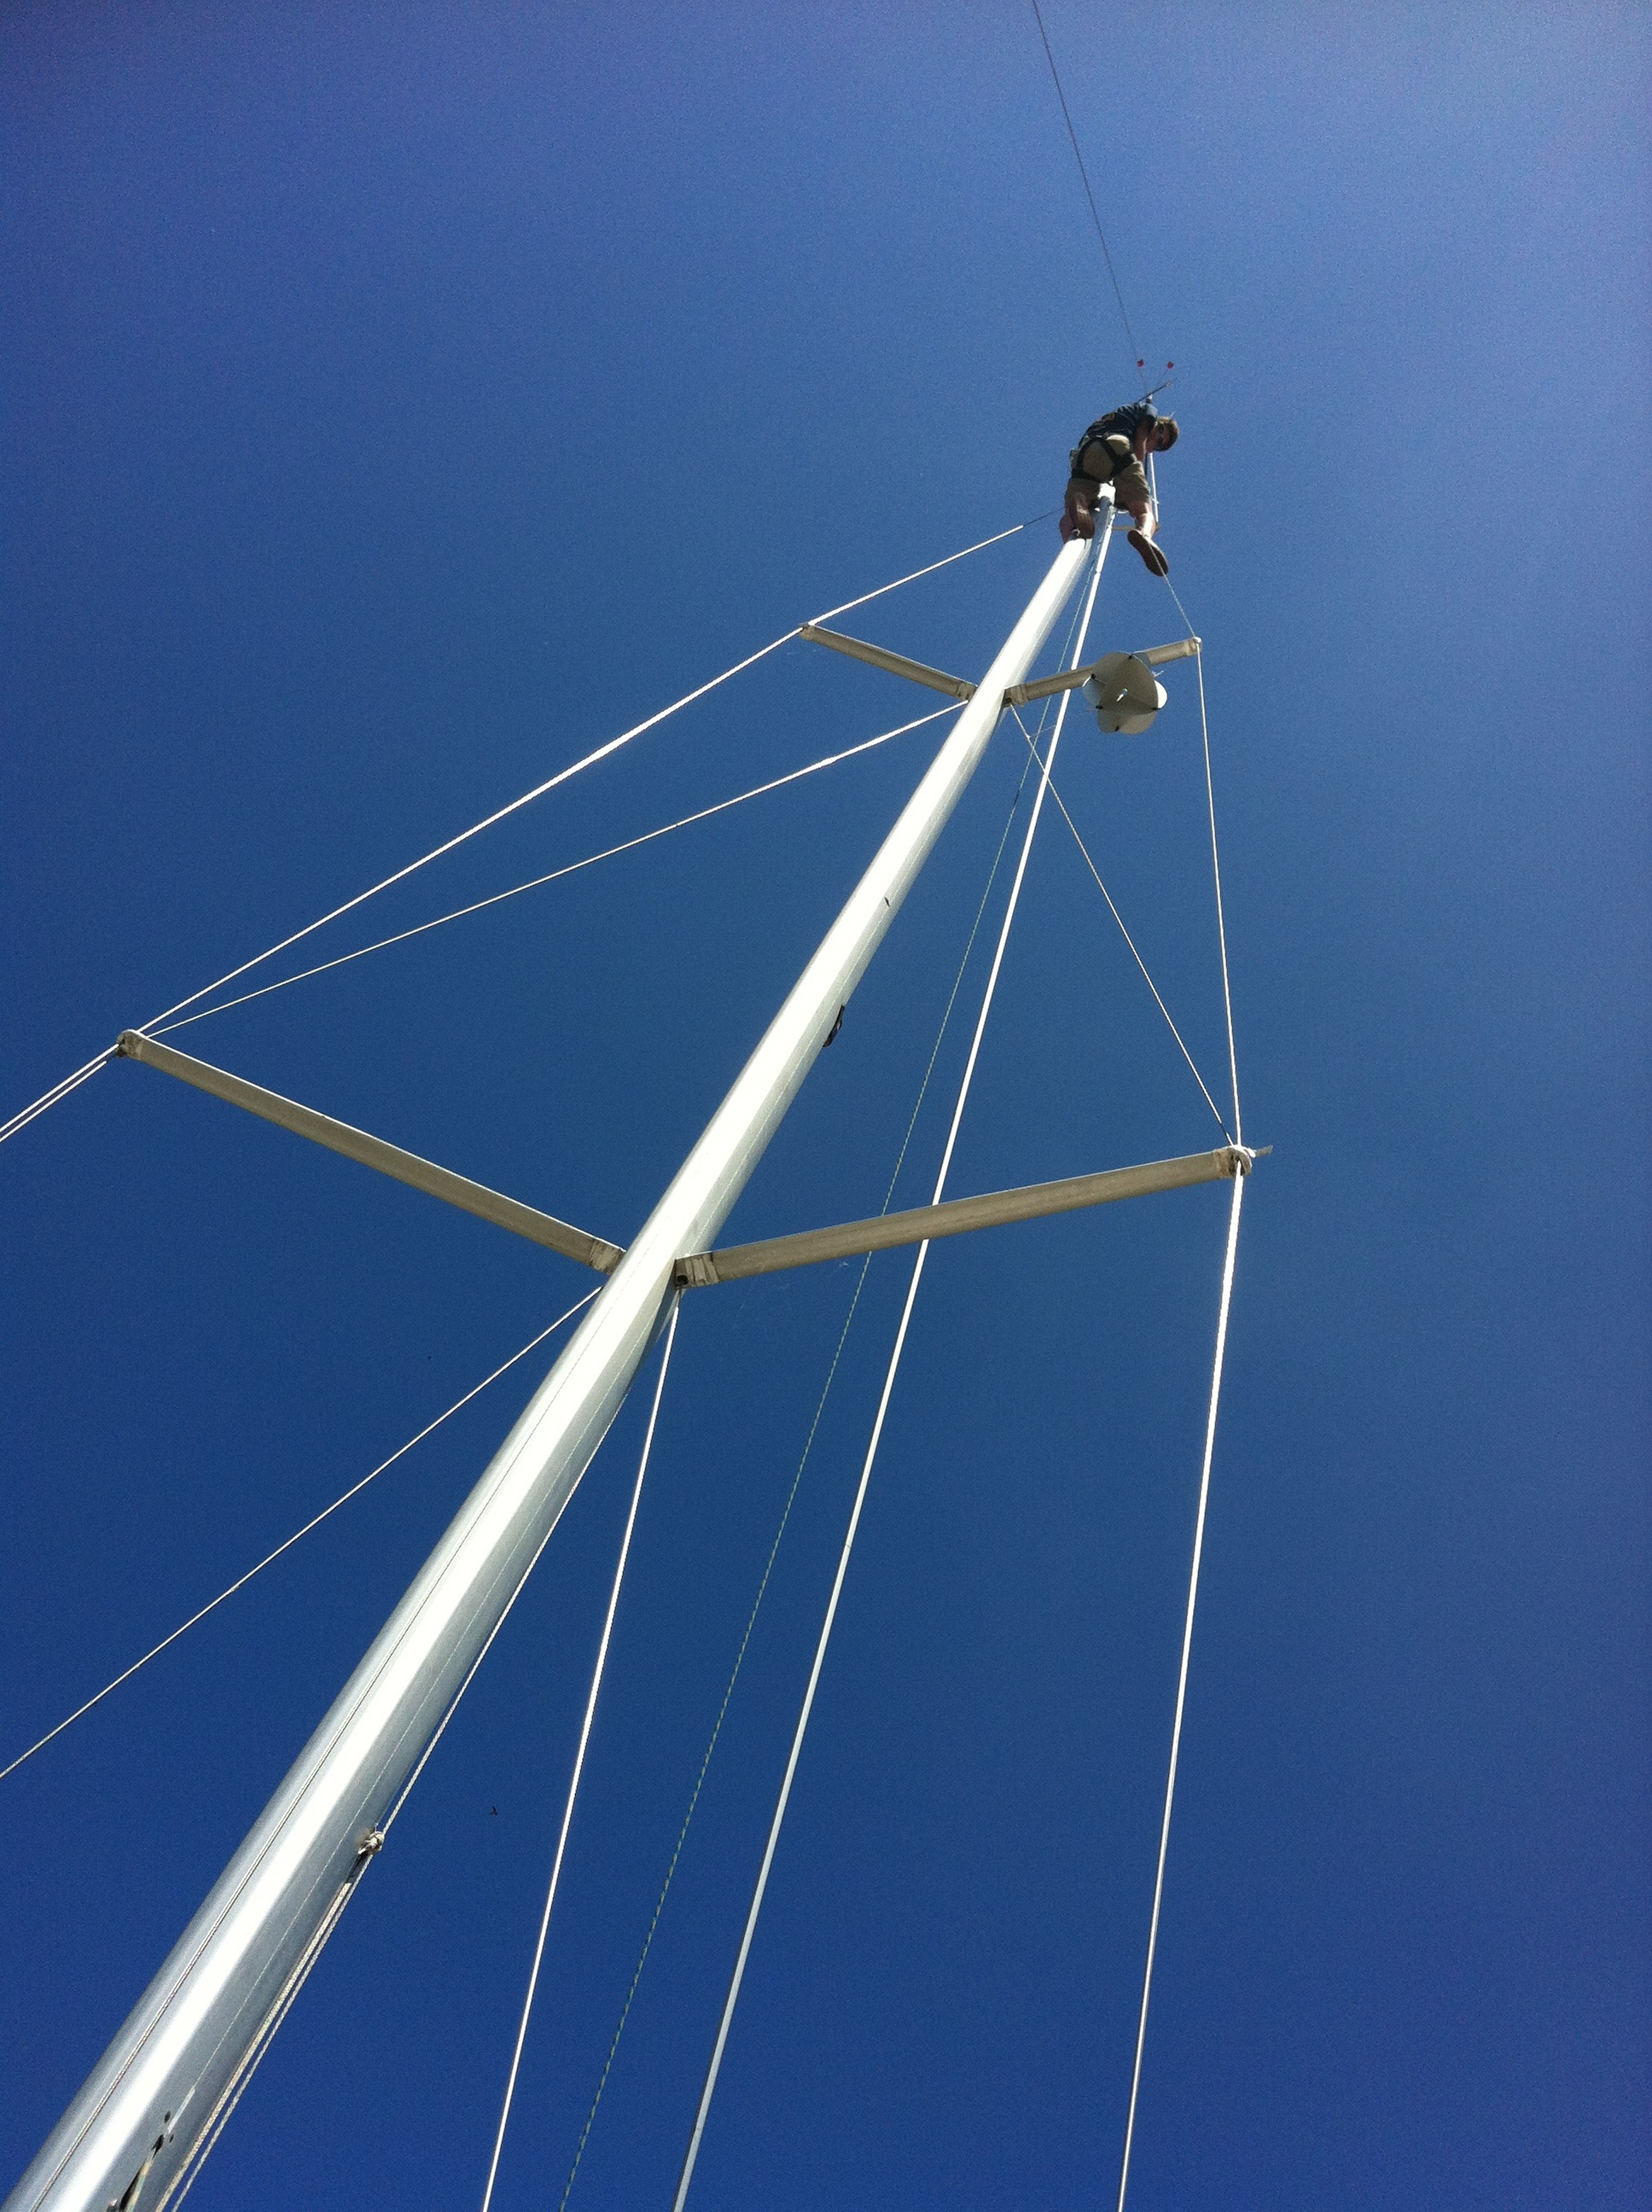 Foster up the mast - pre delivery rig work